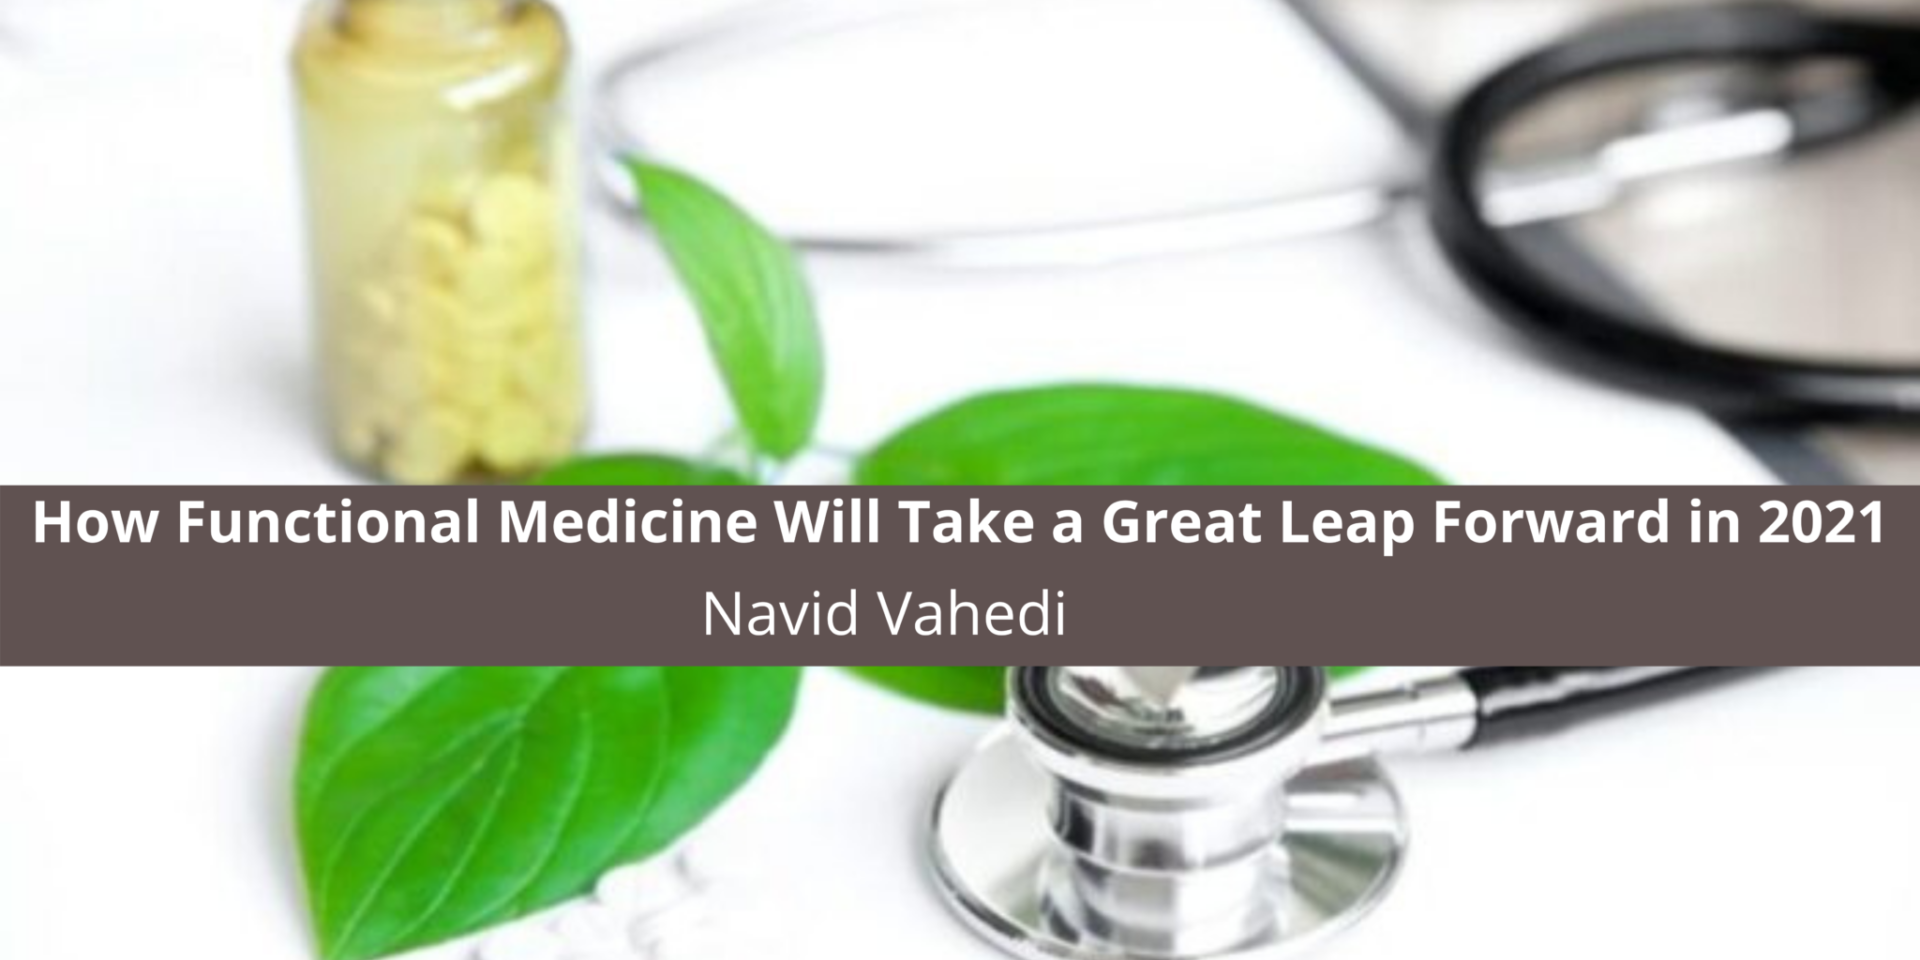 Dr. Navid Vahedi Examines How Functional Medicine Will Take a Great Leap Forward in 2021